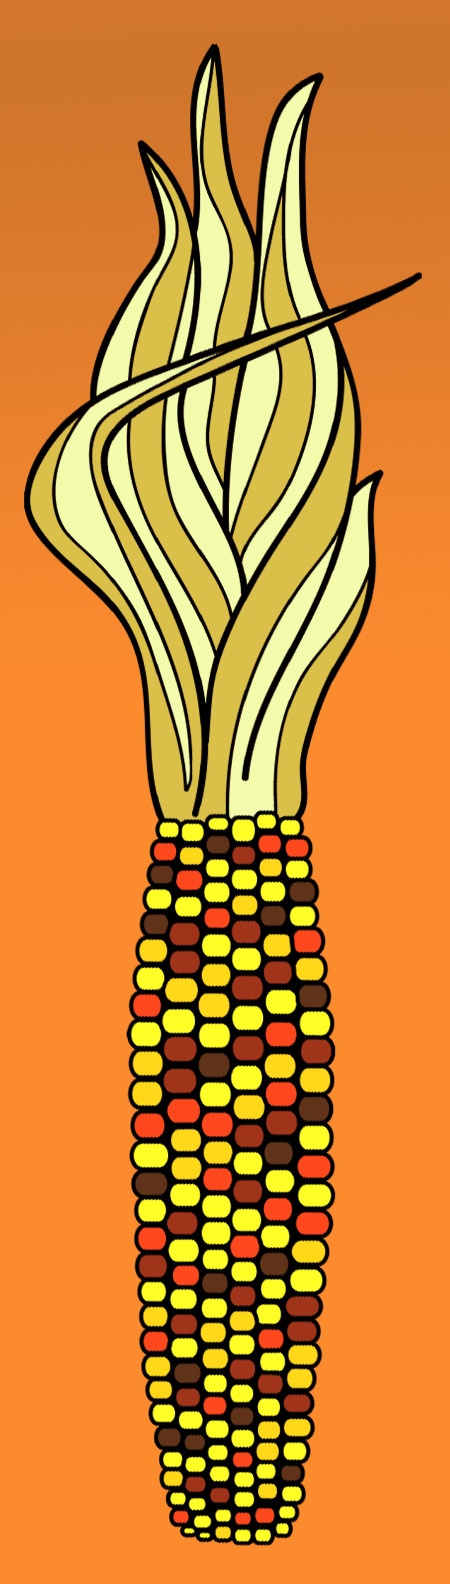 Thanksgiving corn clipart 2